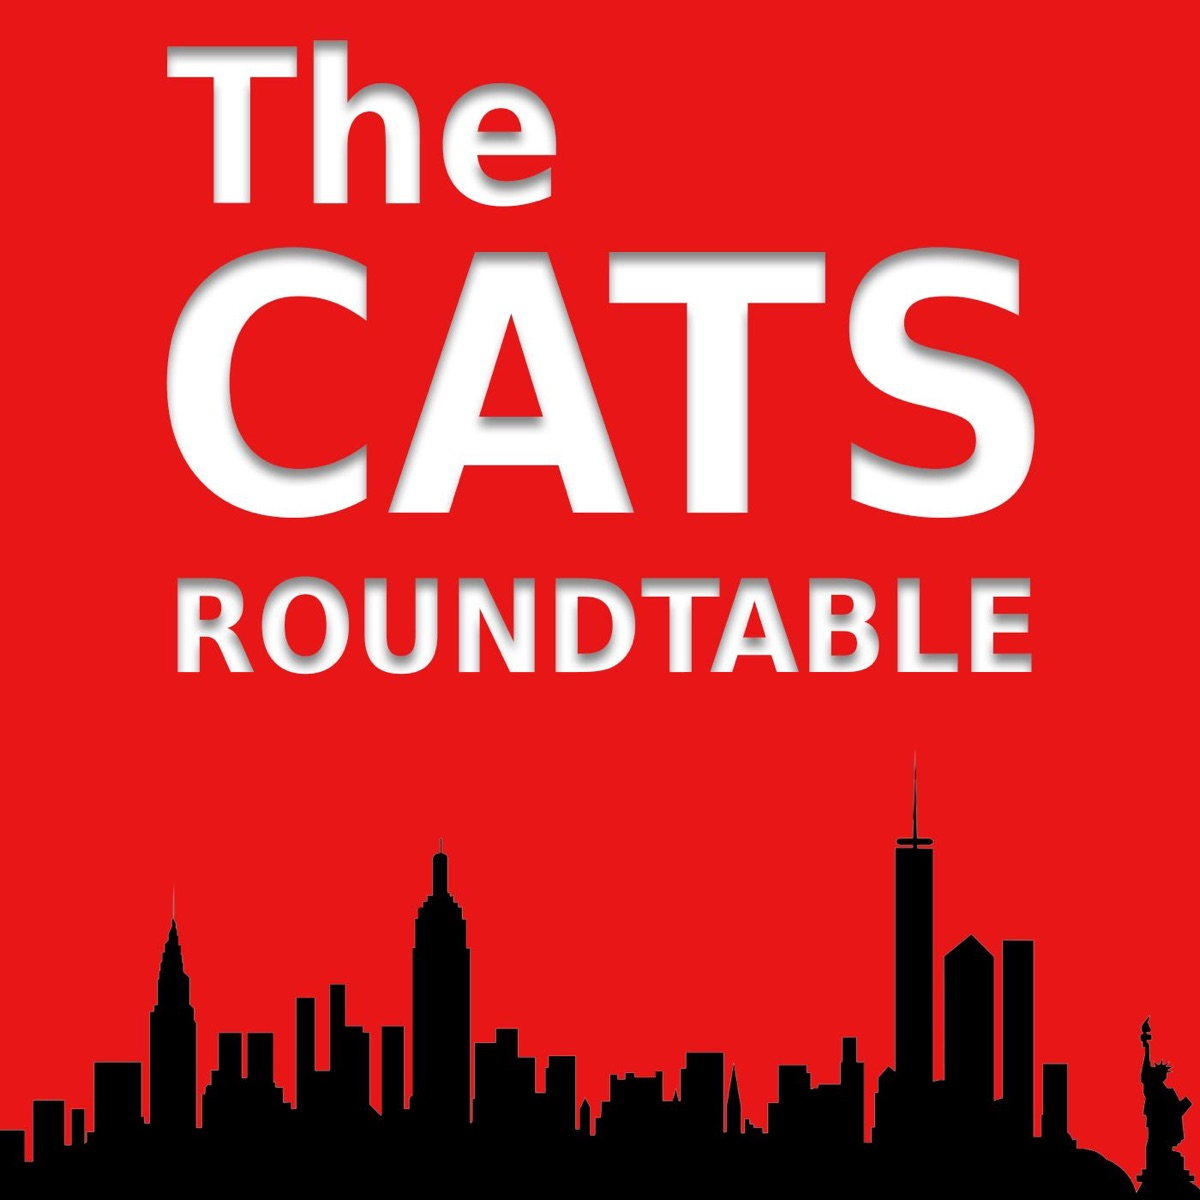 CATS Roundtable